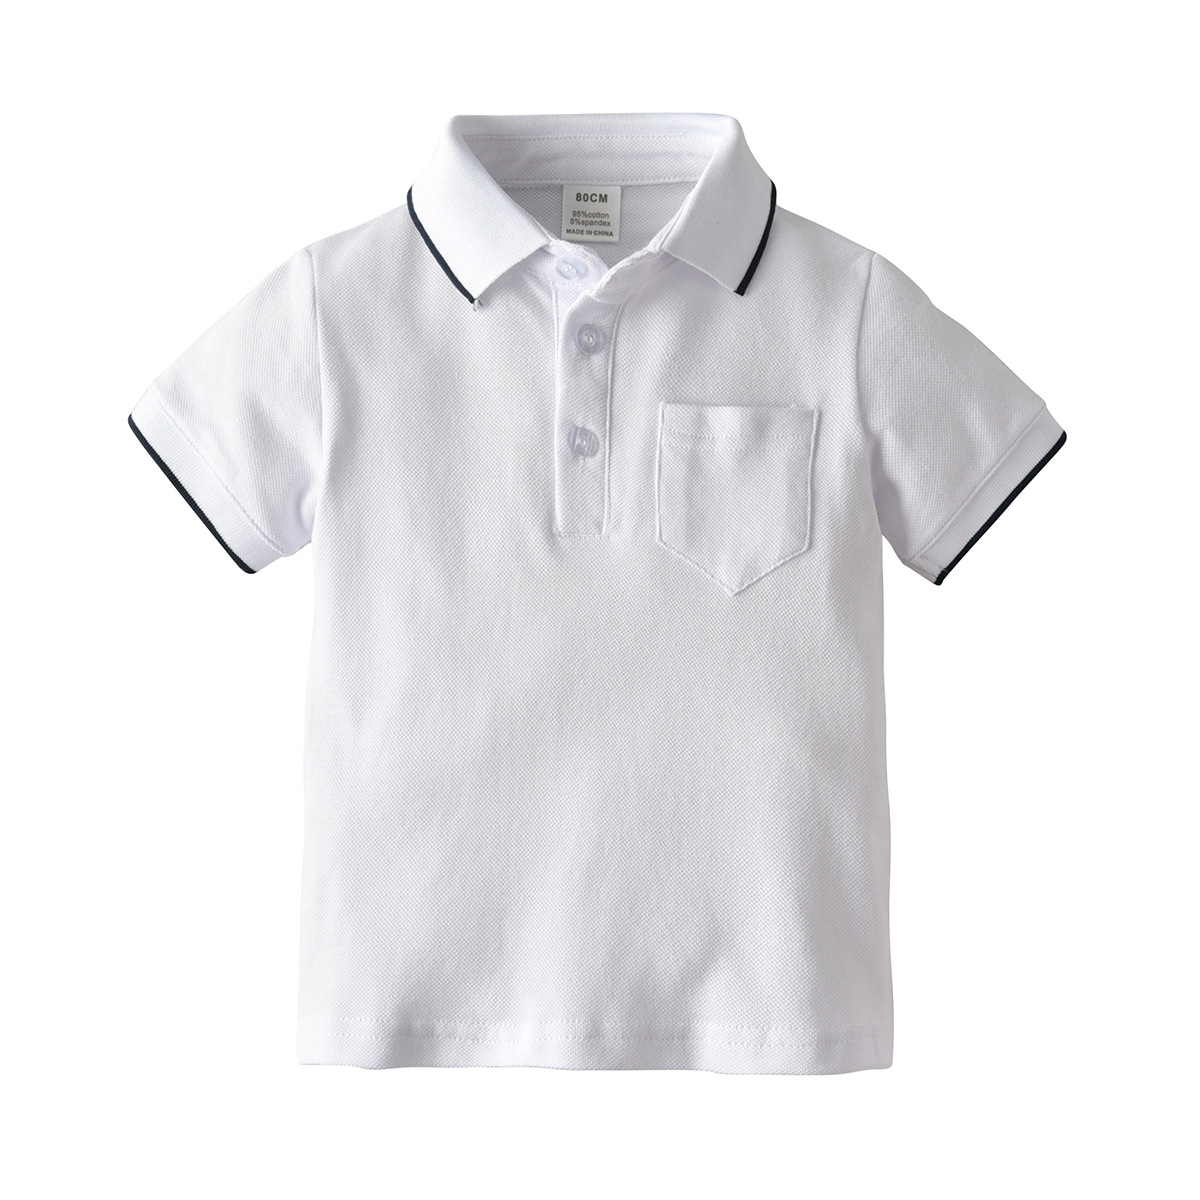 Hot Selling BOY'S Dark Blue Short Sleeve POLO Shirt Children Fold-down Collar Tops T-shirt Half Cardigan Lapel T-shirt